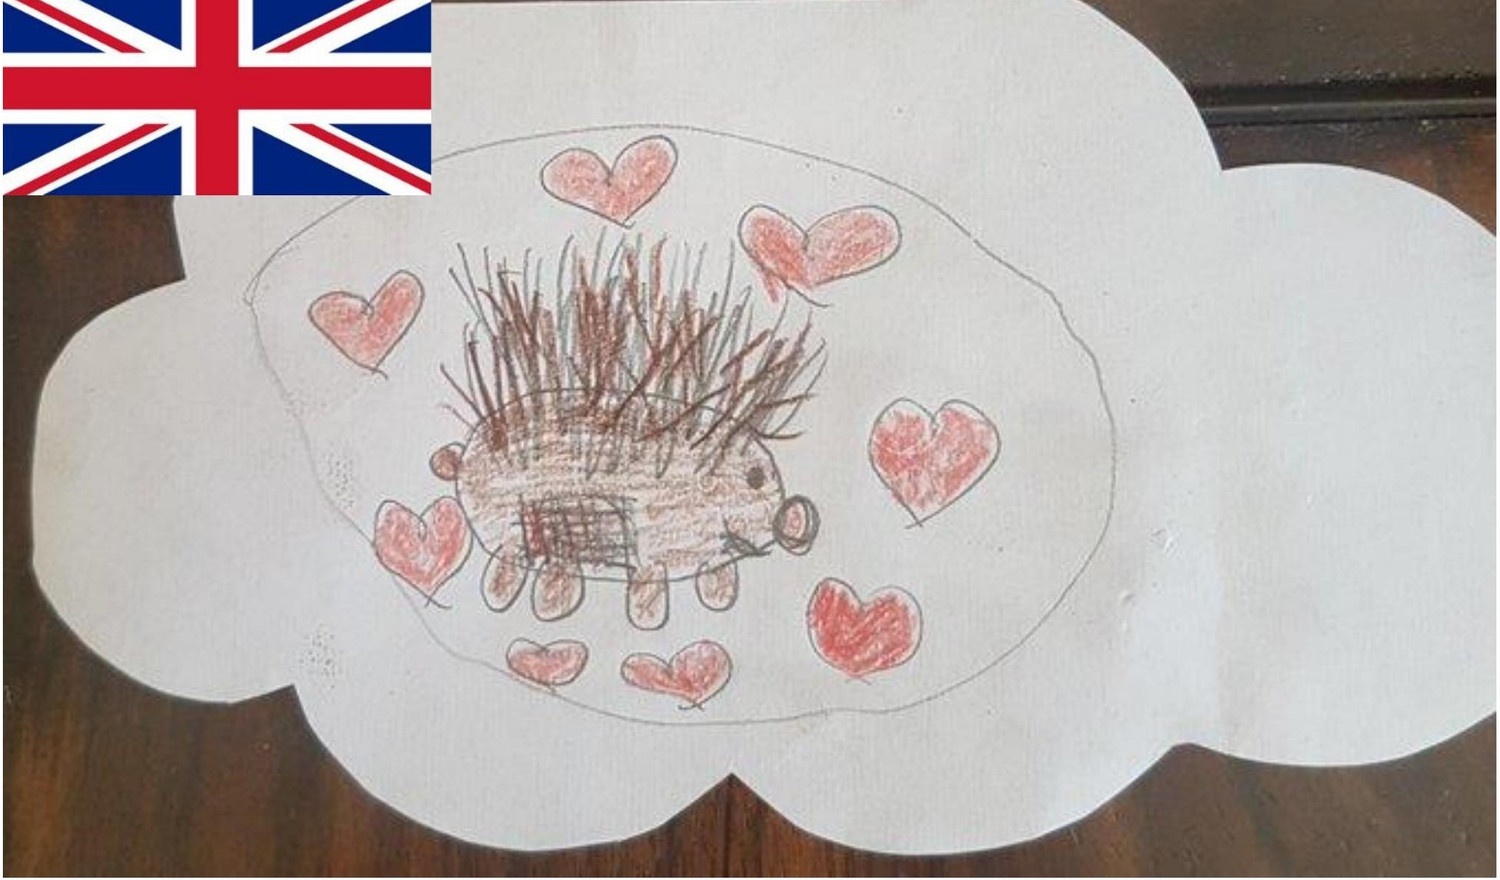 This is the second part of Isabella's dream where the British hedgehog  (a small Porcupine) has recovered and is feeling the love